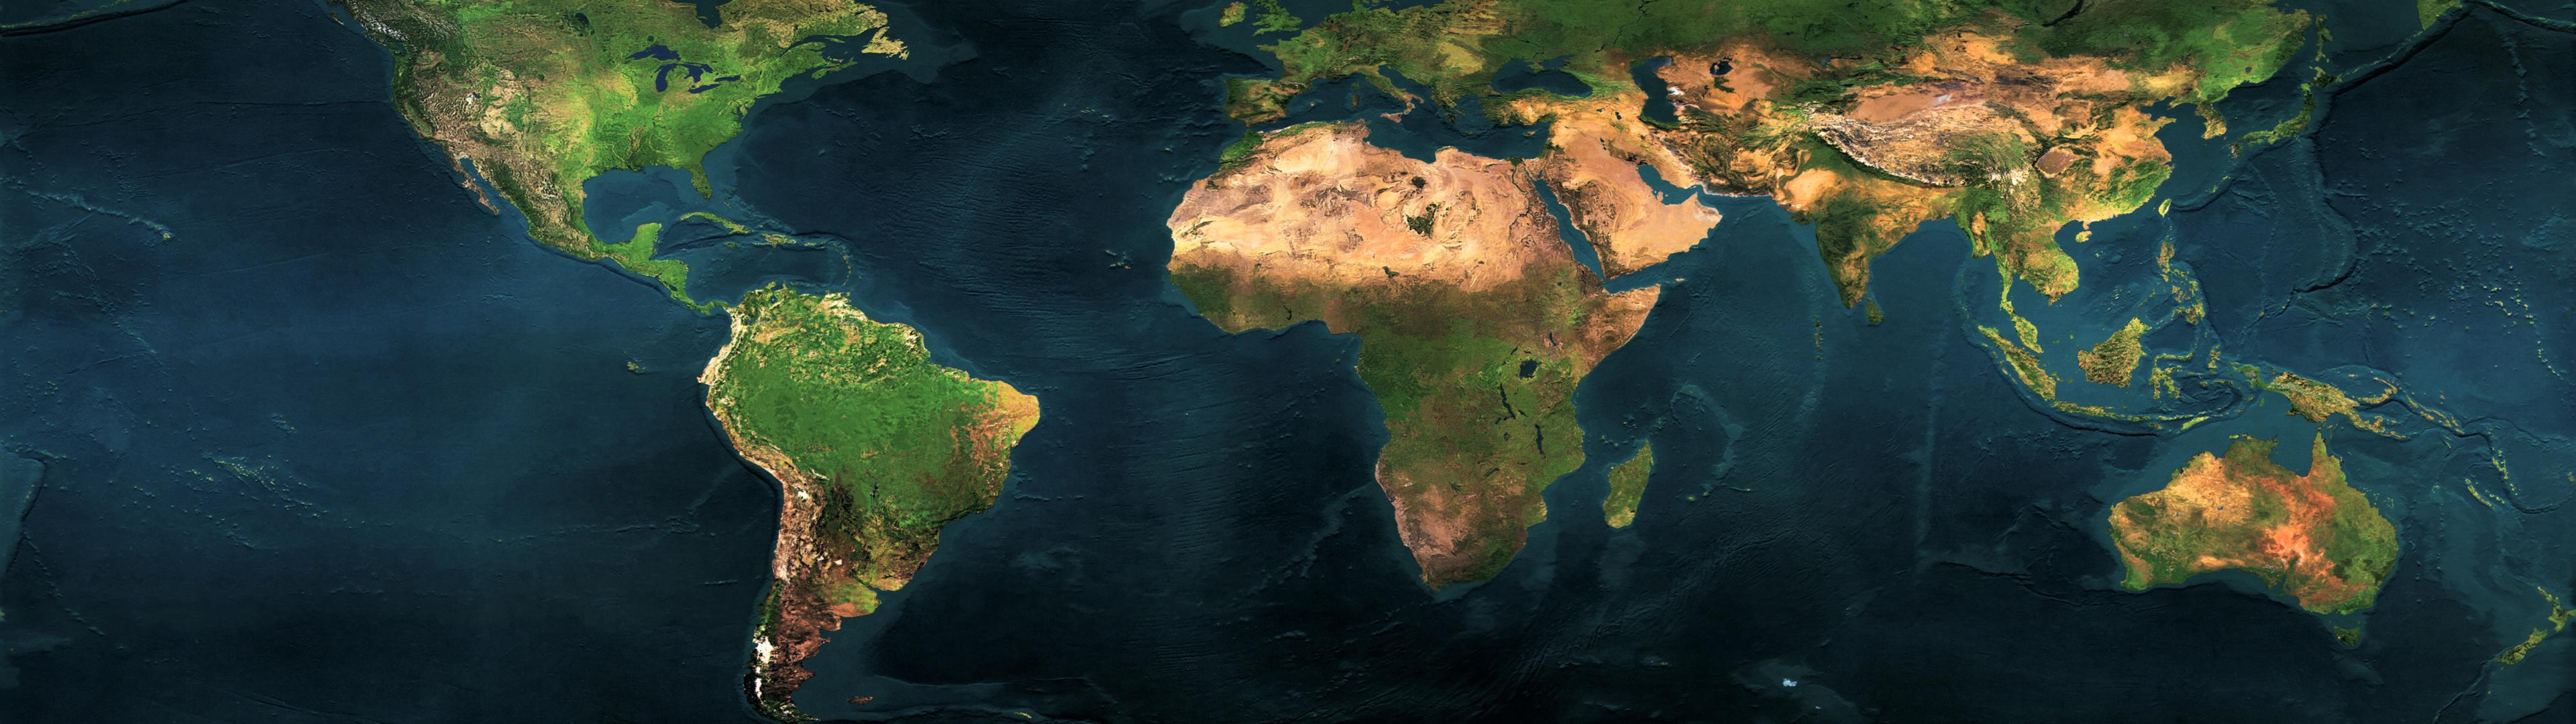 World Map Dual Screen Wallpaper | 3840x1080 | ID:45882